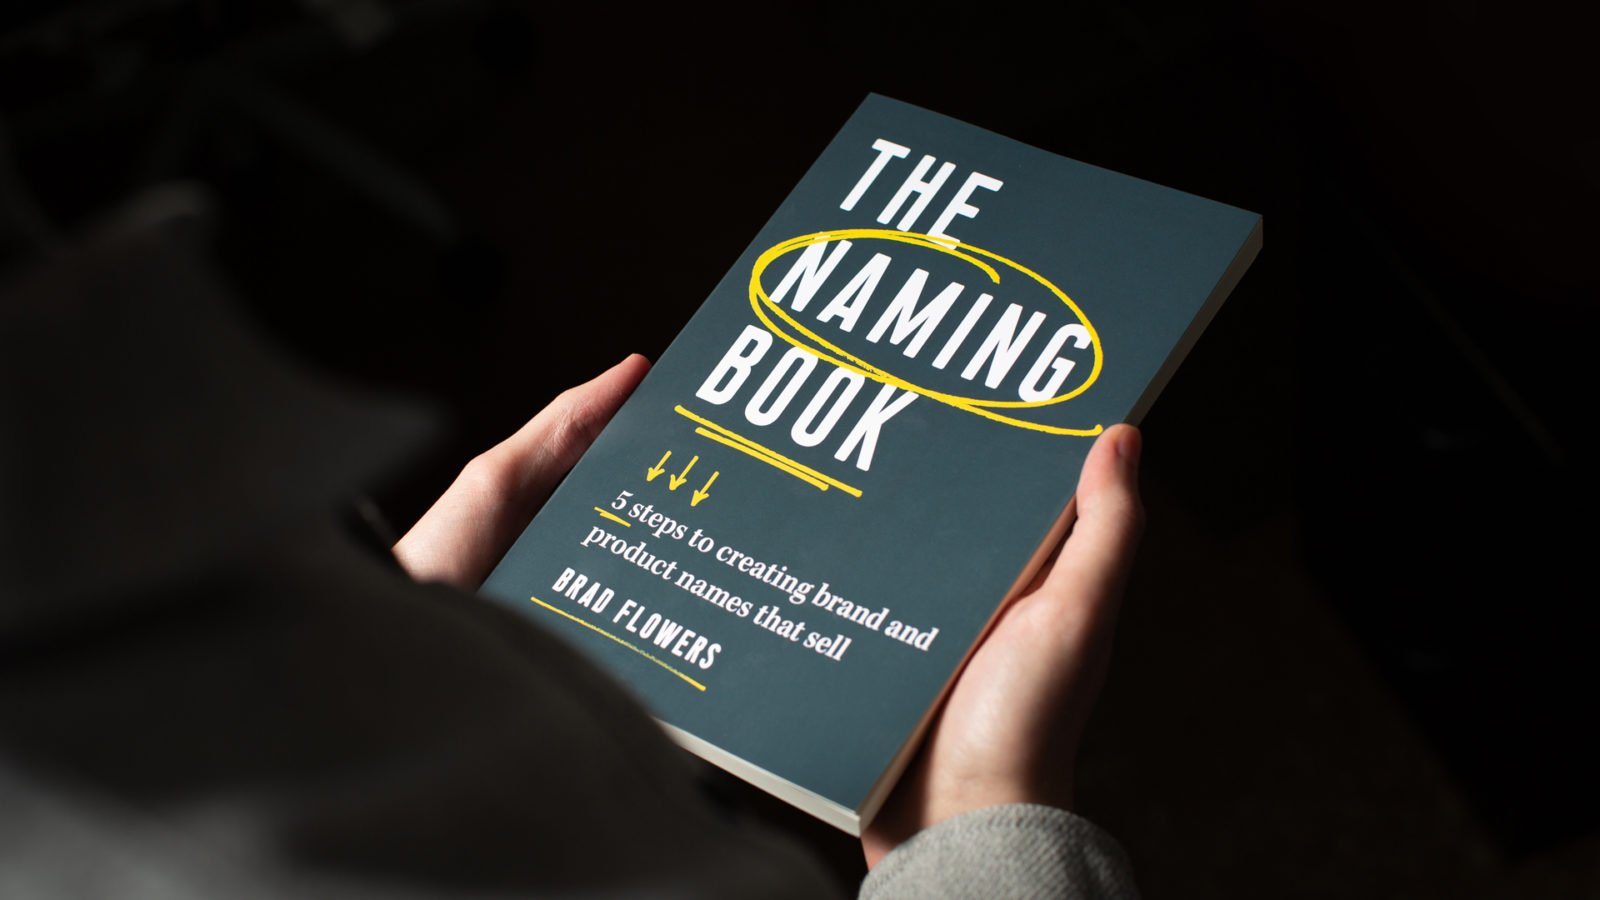 The Naming Book Photography: Cover